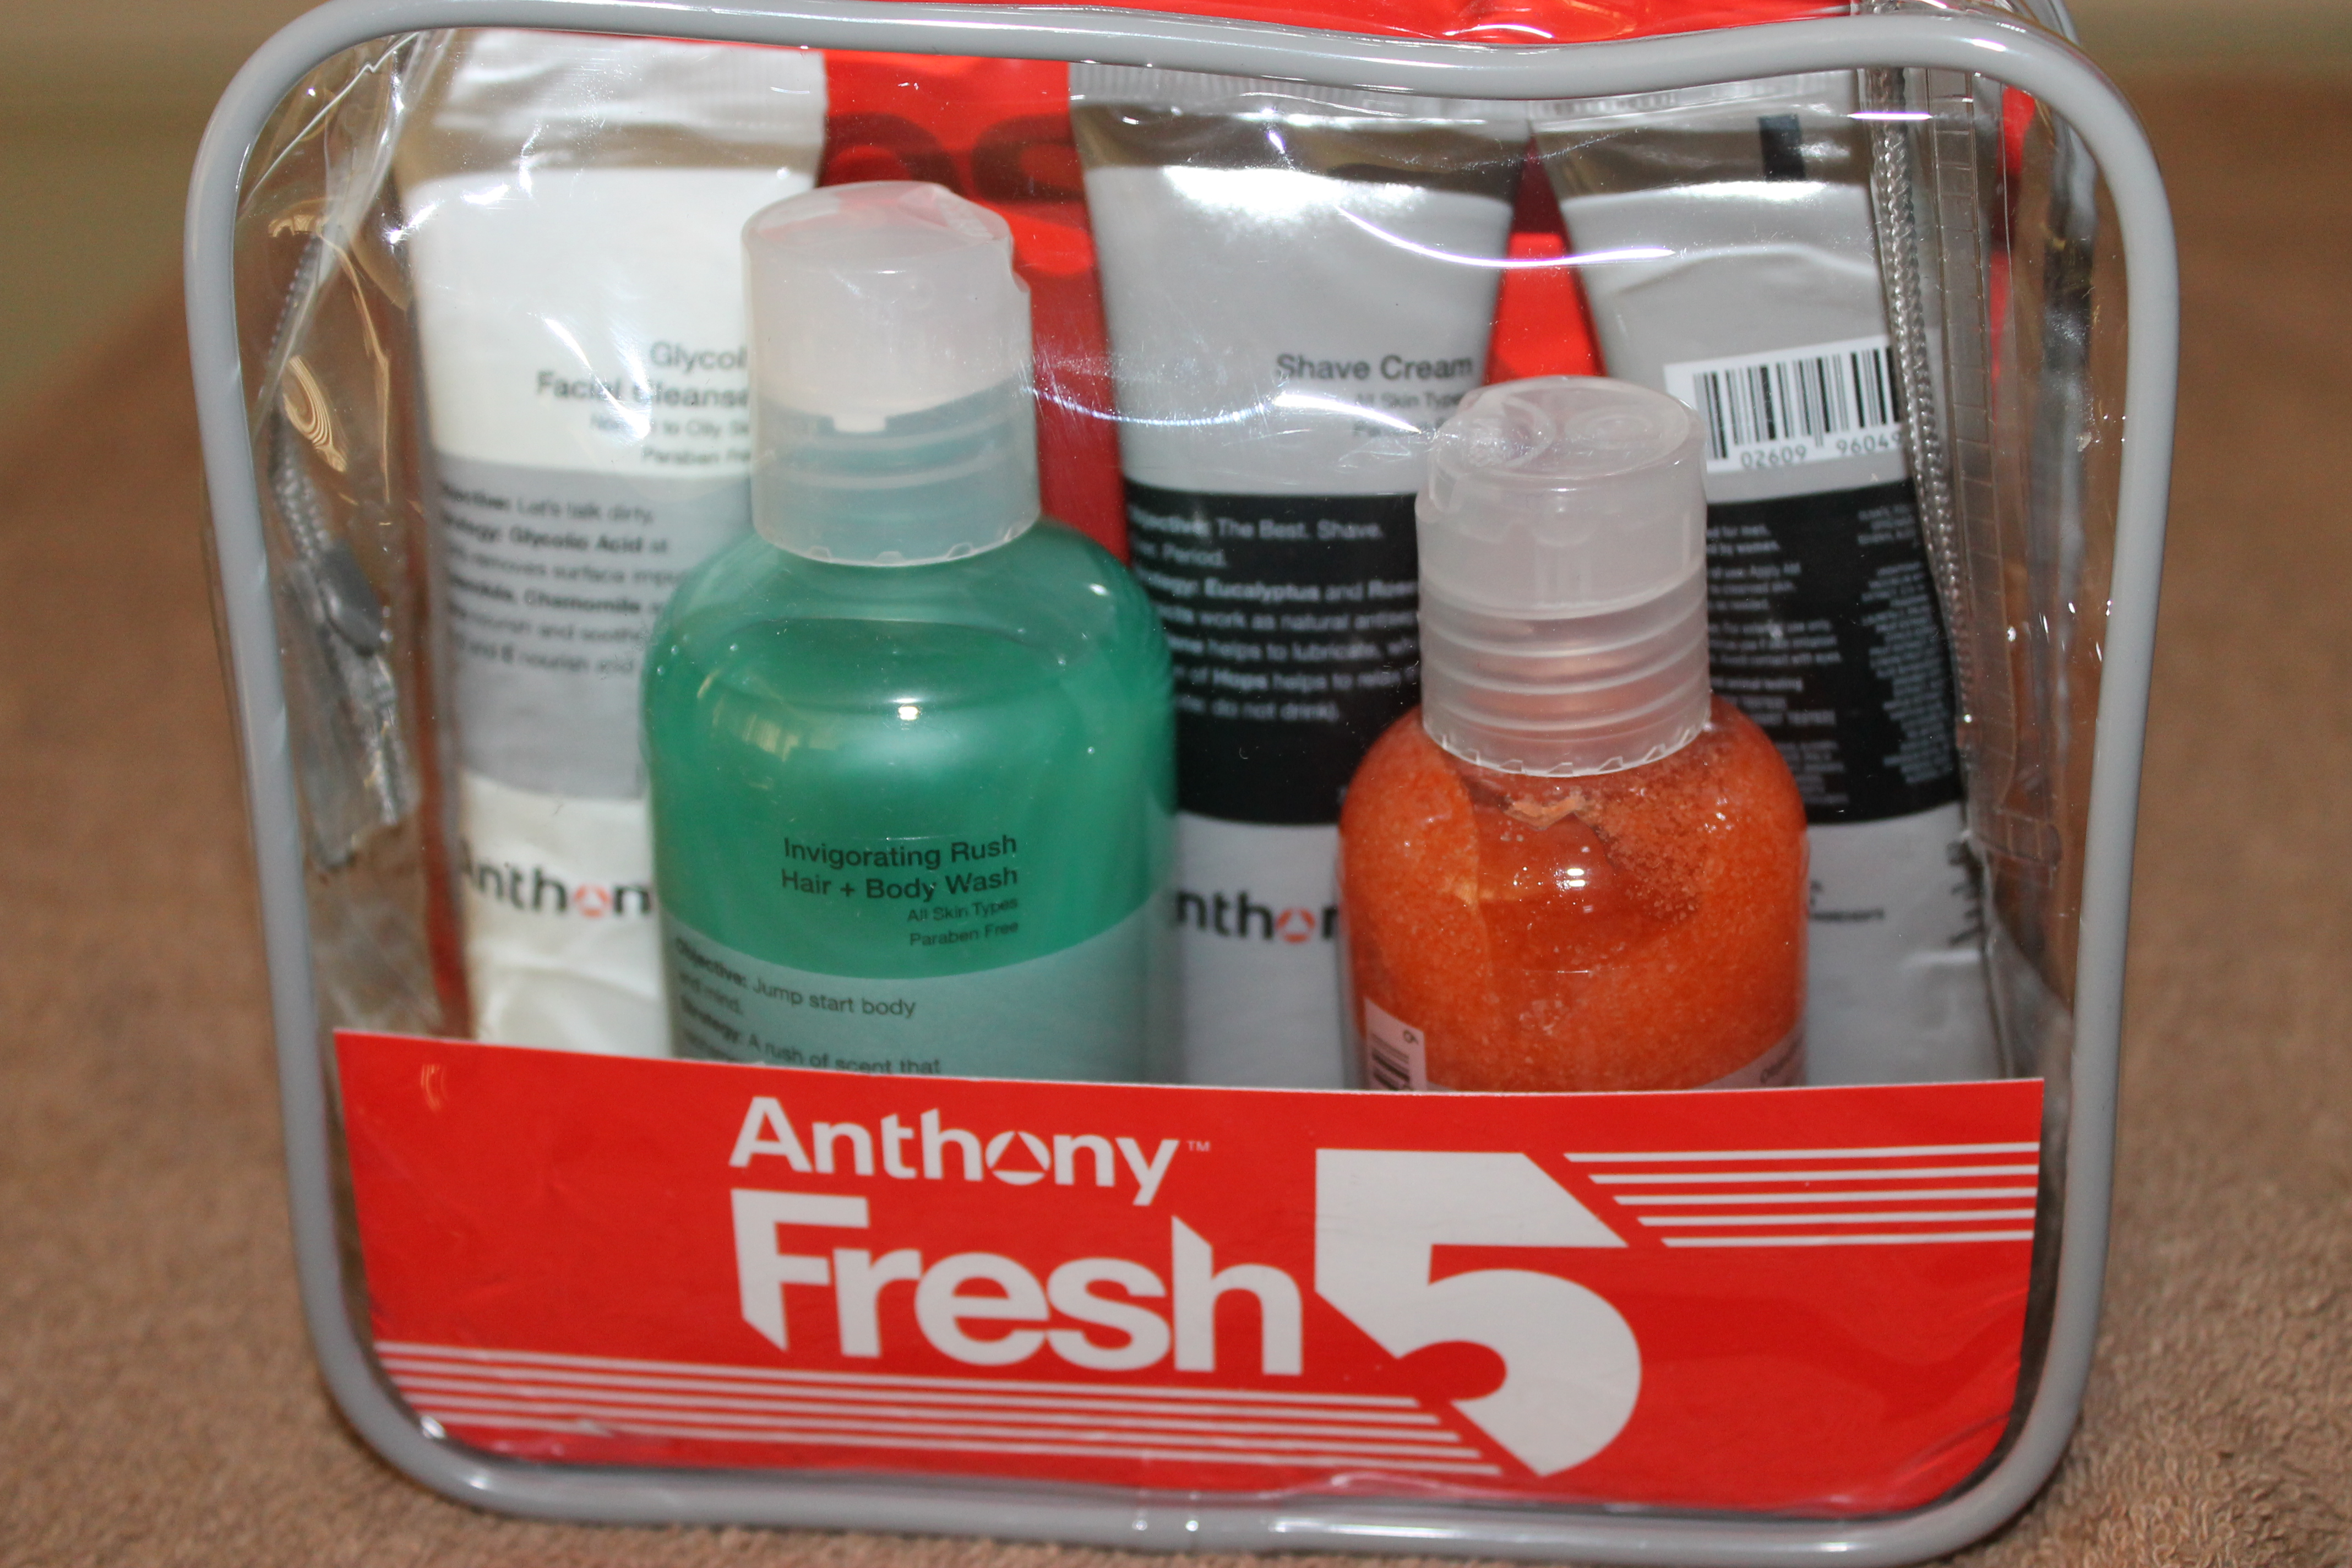 Happy Father's Day  From Anthony , Fresh 5 Skincare Kit!